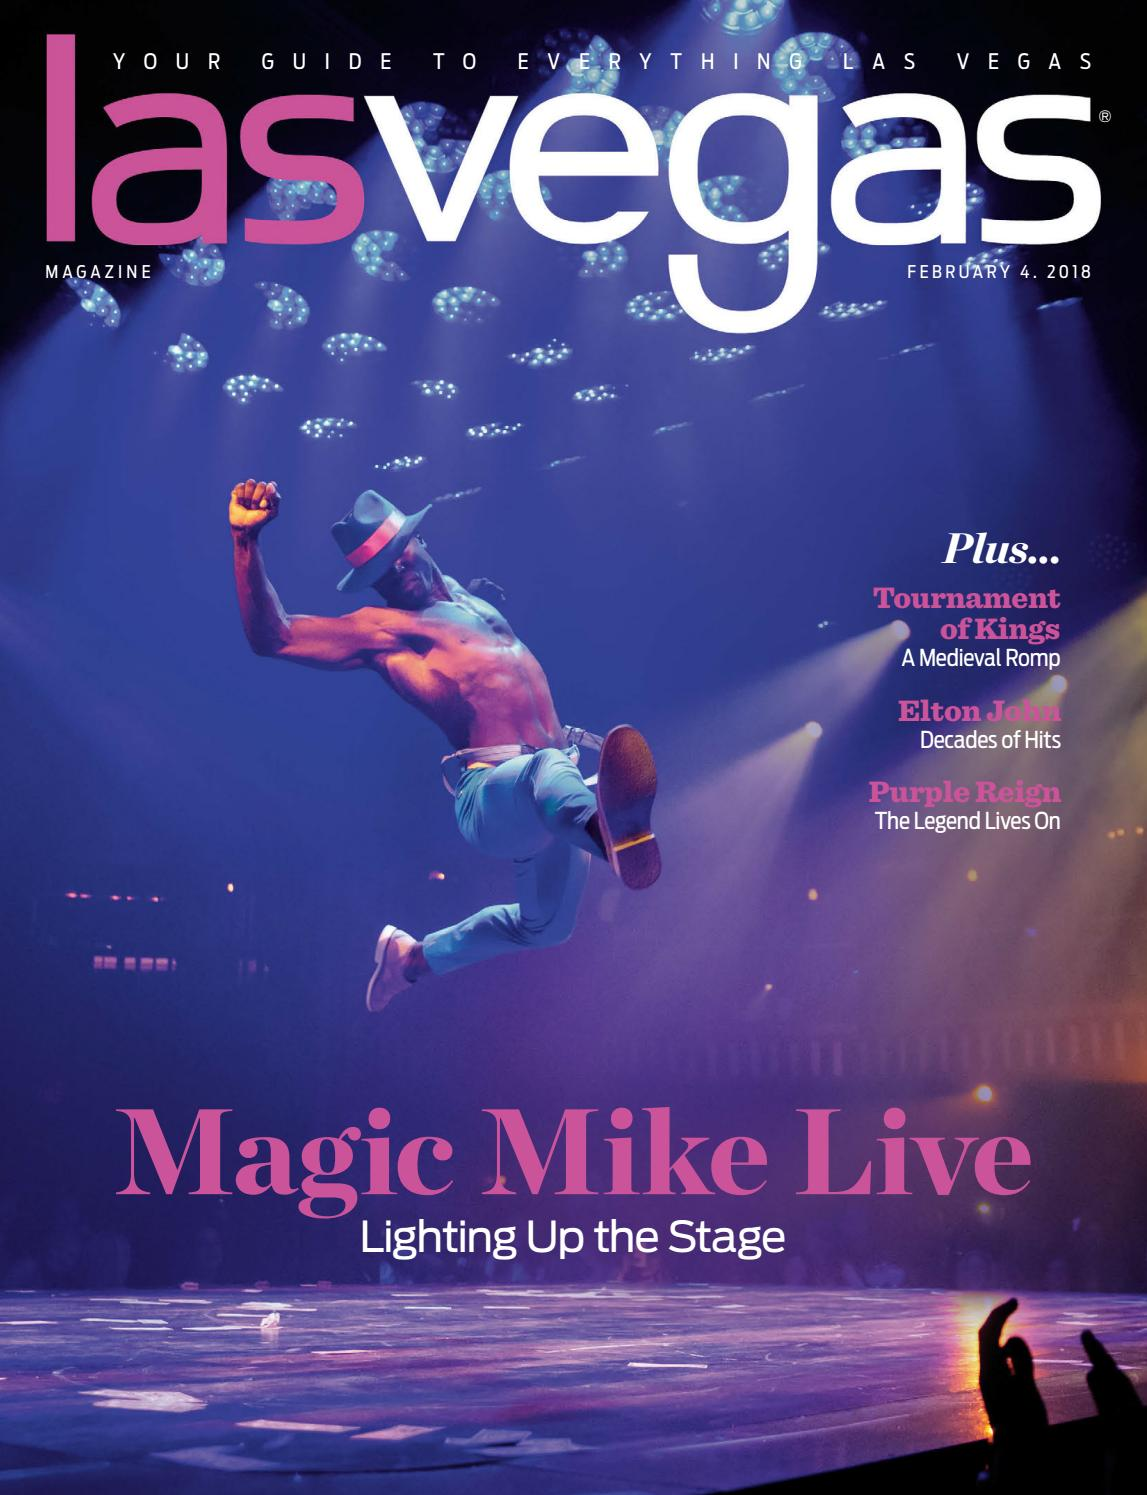 36a2d7f9a315 2018-02-04 - Las Vegas Magazine by Greenspun Media Group - issuu